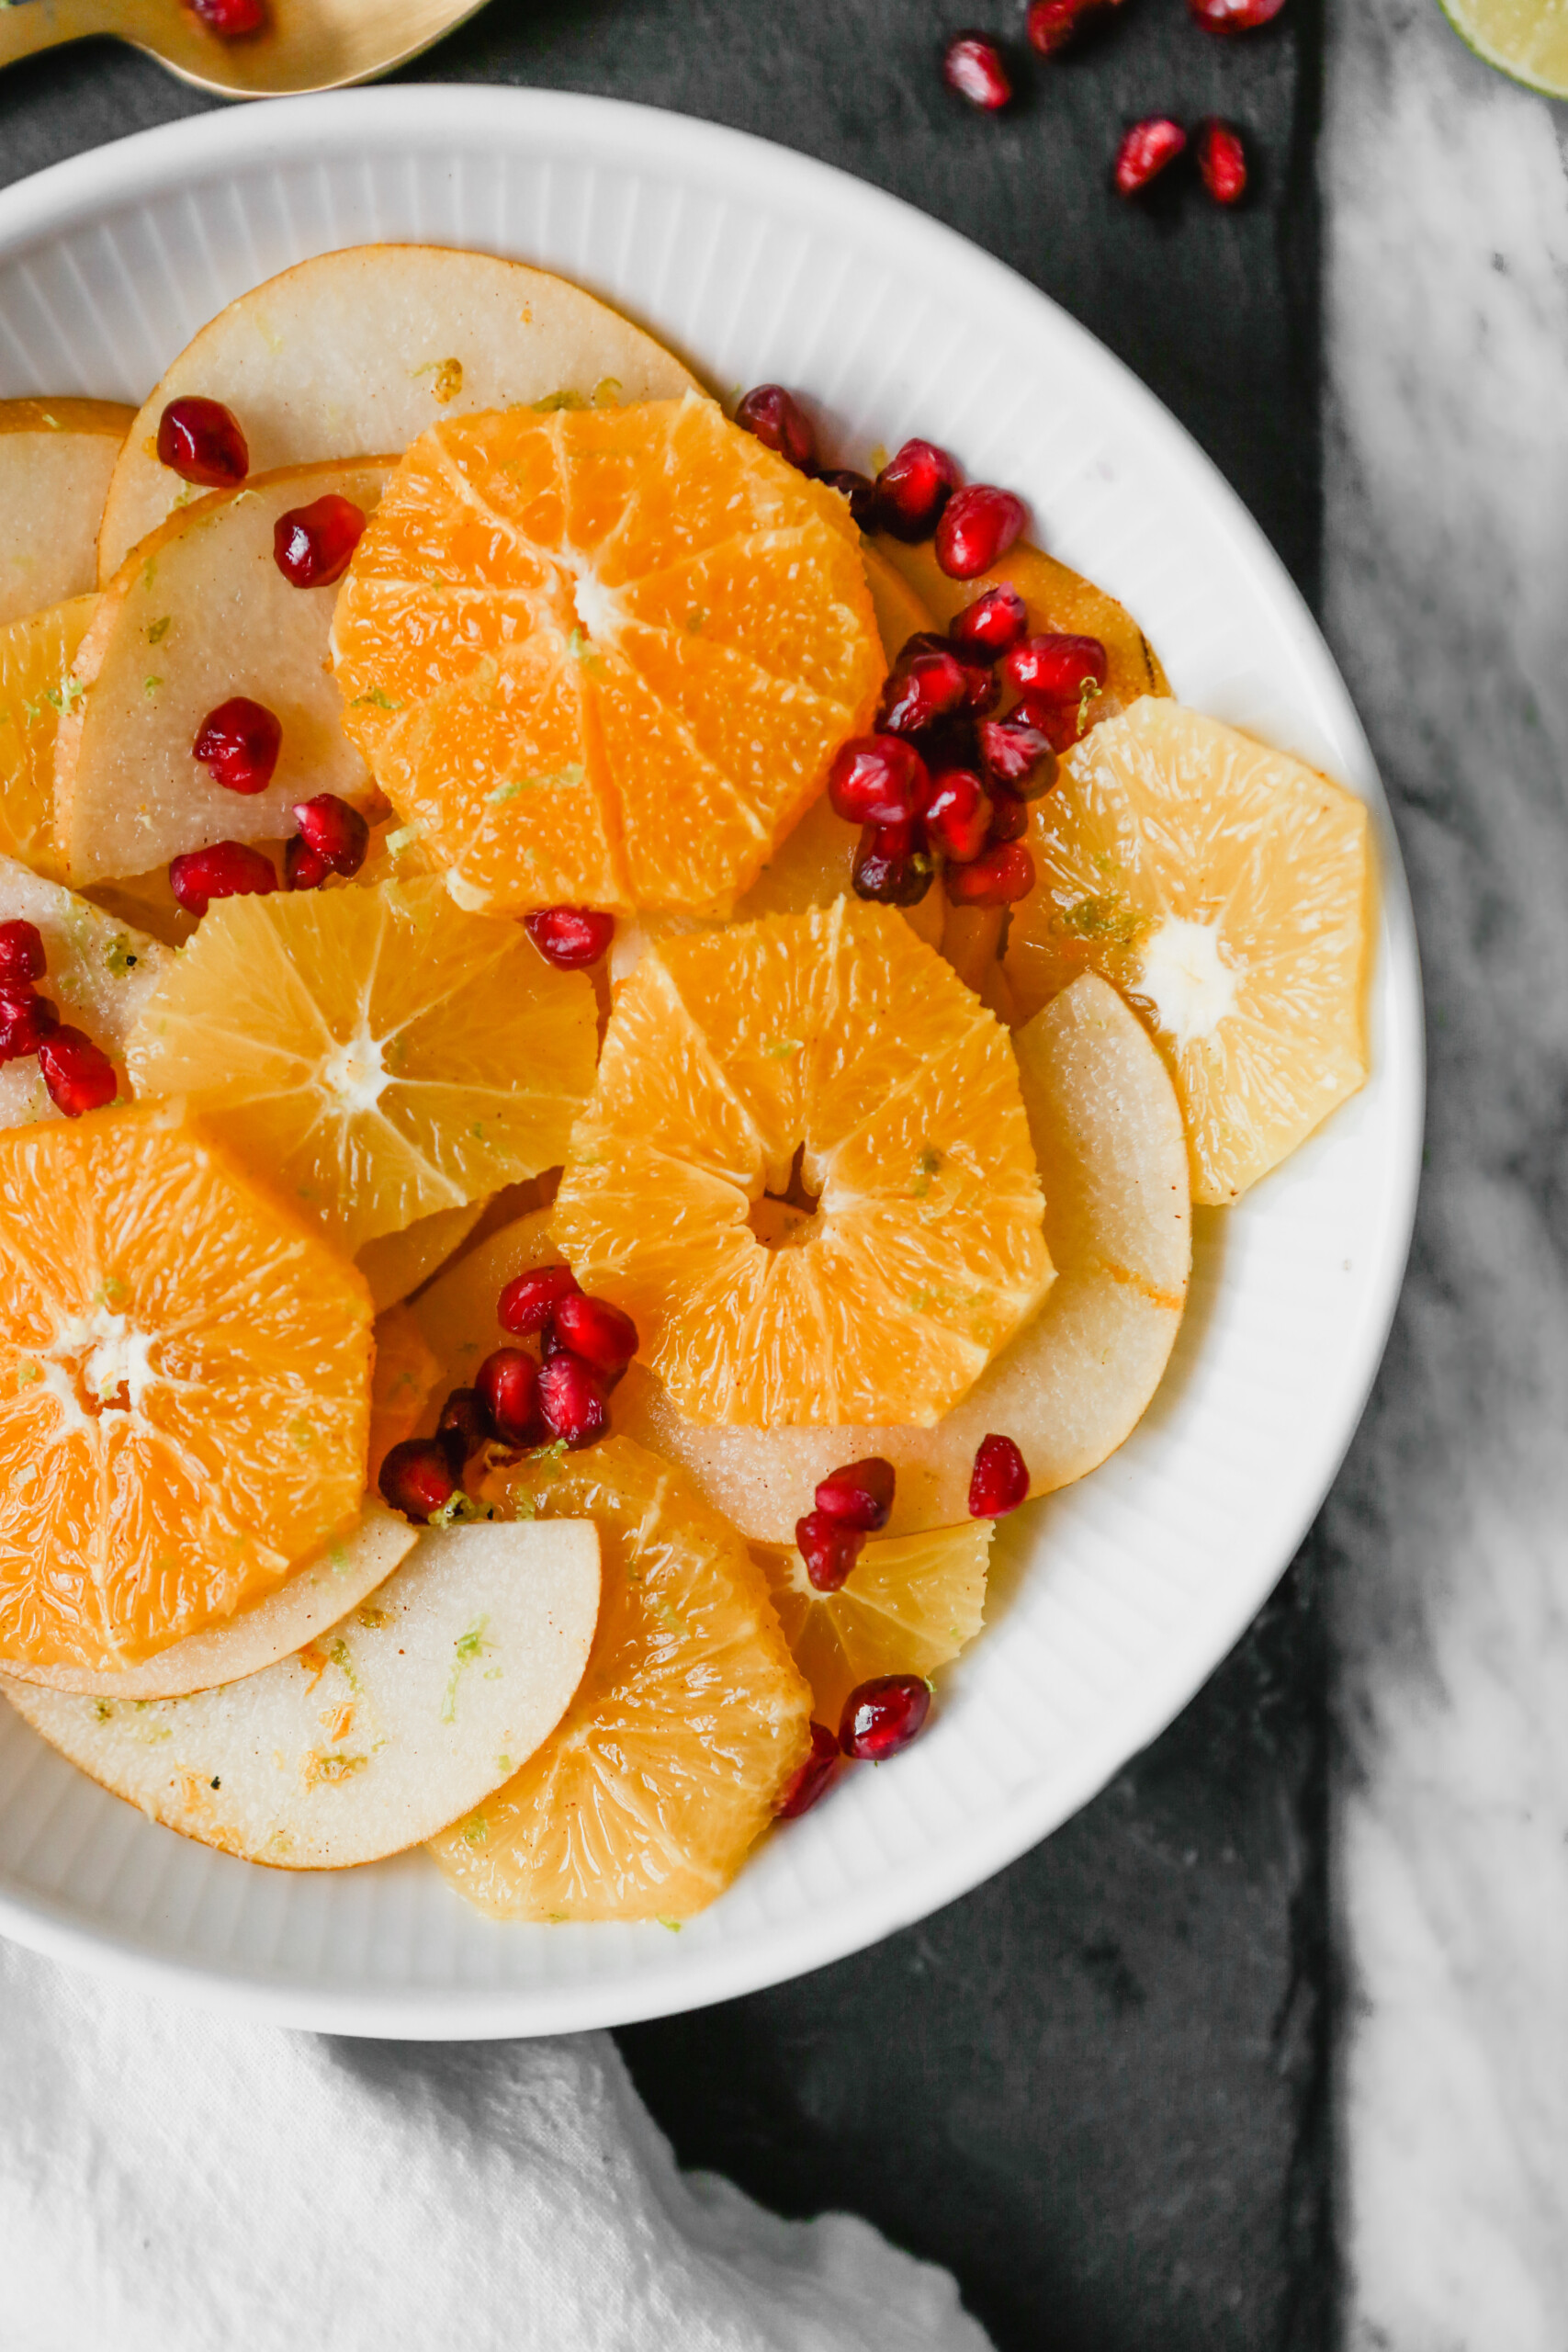 Photograph of winter citrus fruit salad with pomegranate seeds set in a white bowl on a marble table.